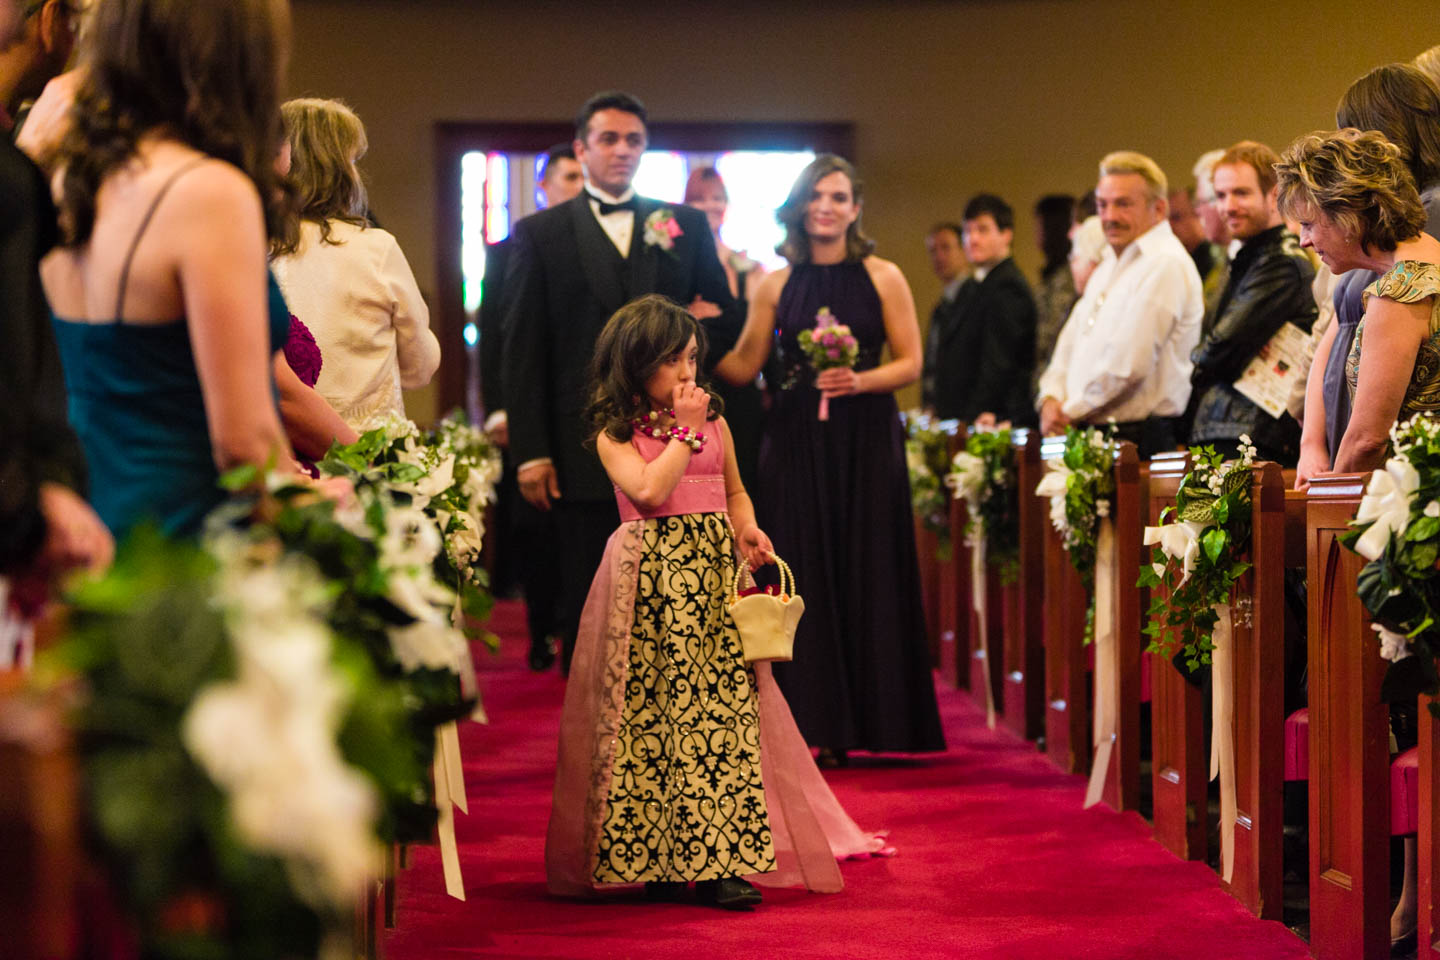 The flower girl walking down the aisle and forgets to throw some flower petals